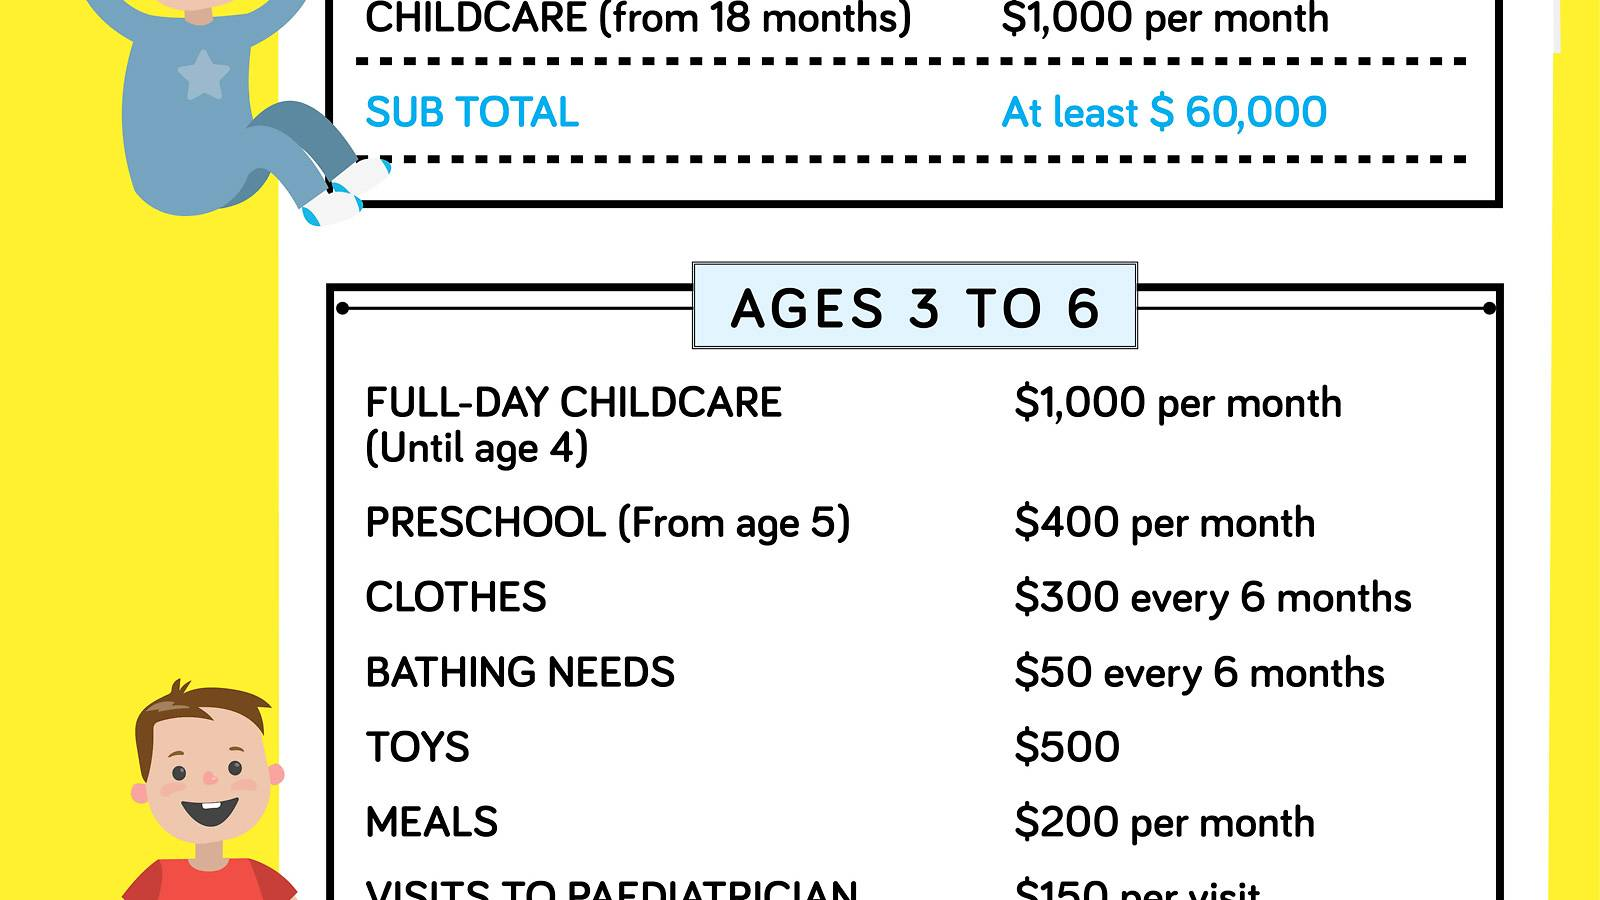 Parents-Raising-a-child-A-breakdown-of-the-figures-Infographic-5 (1)